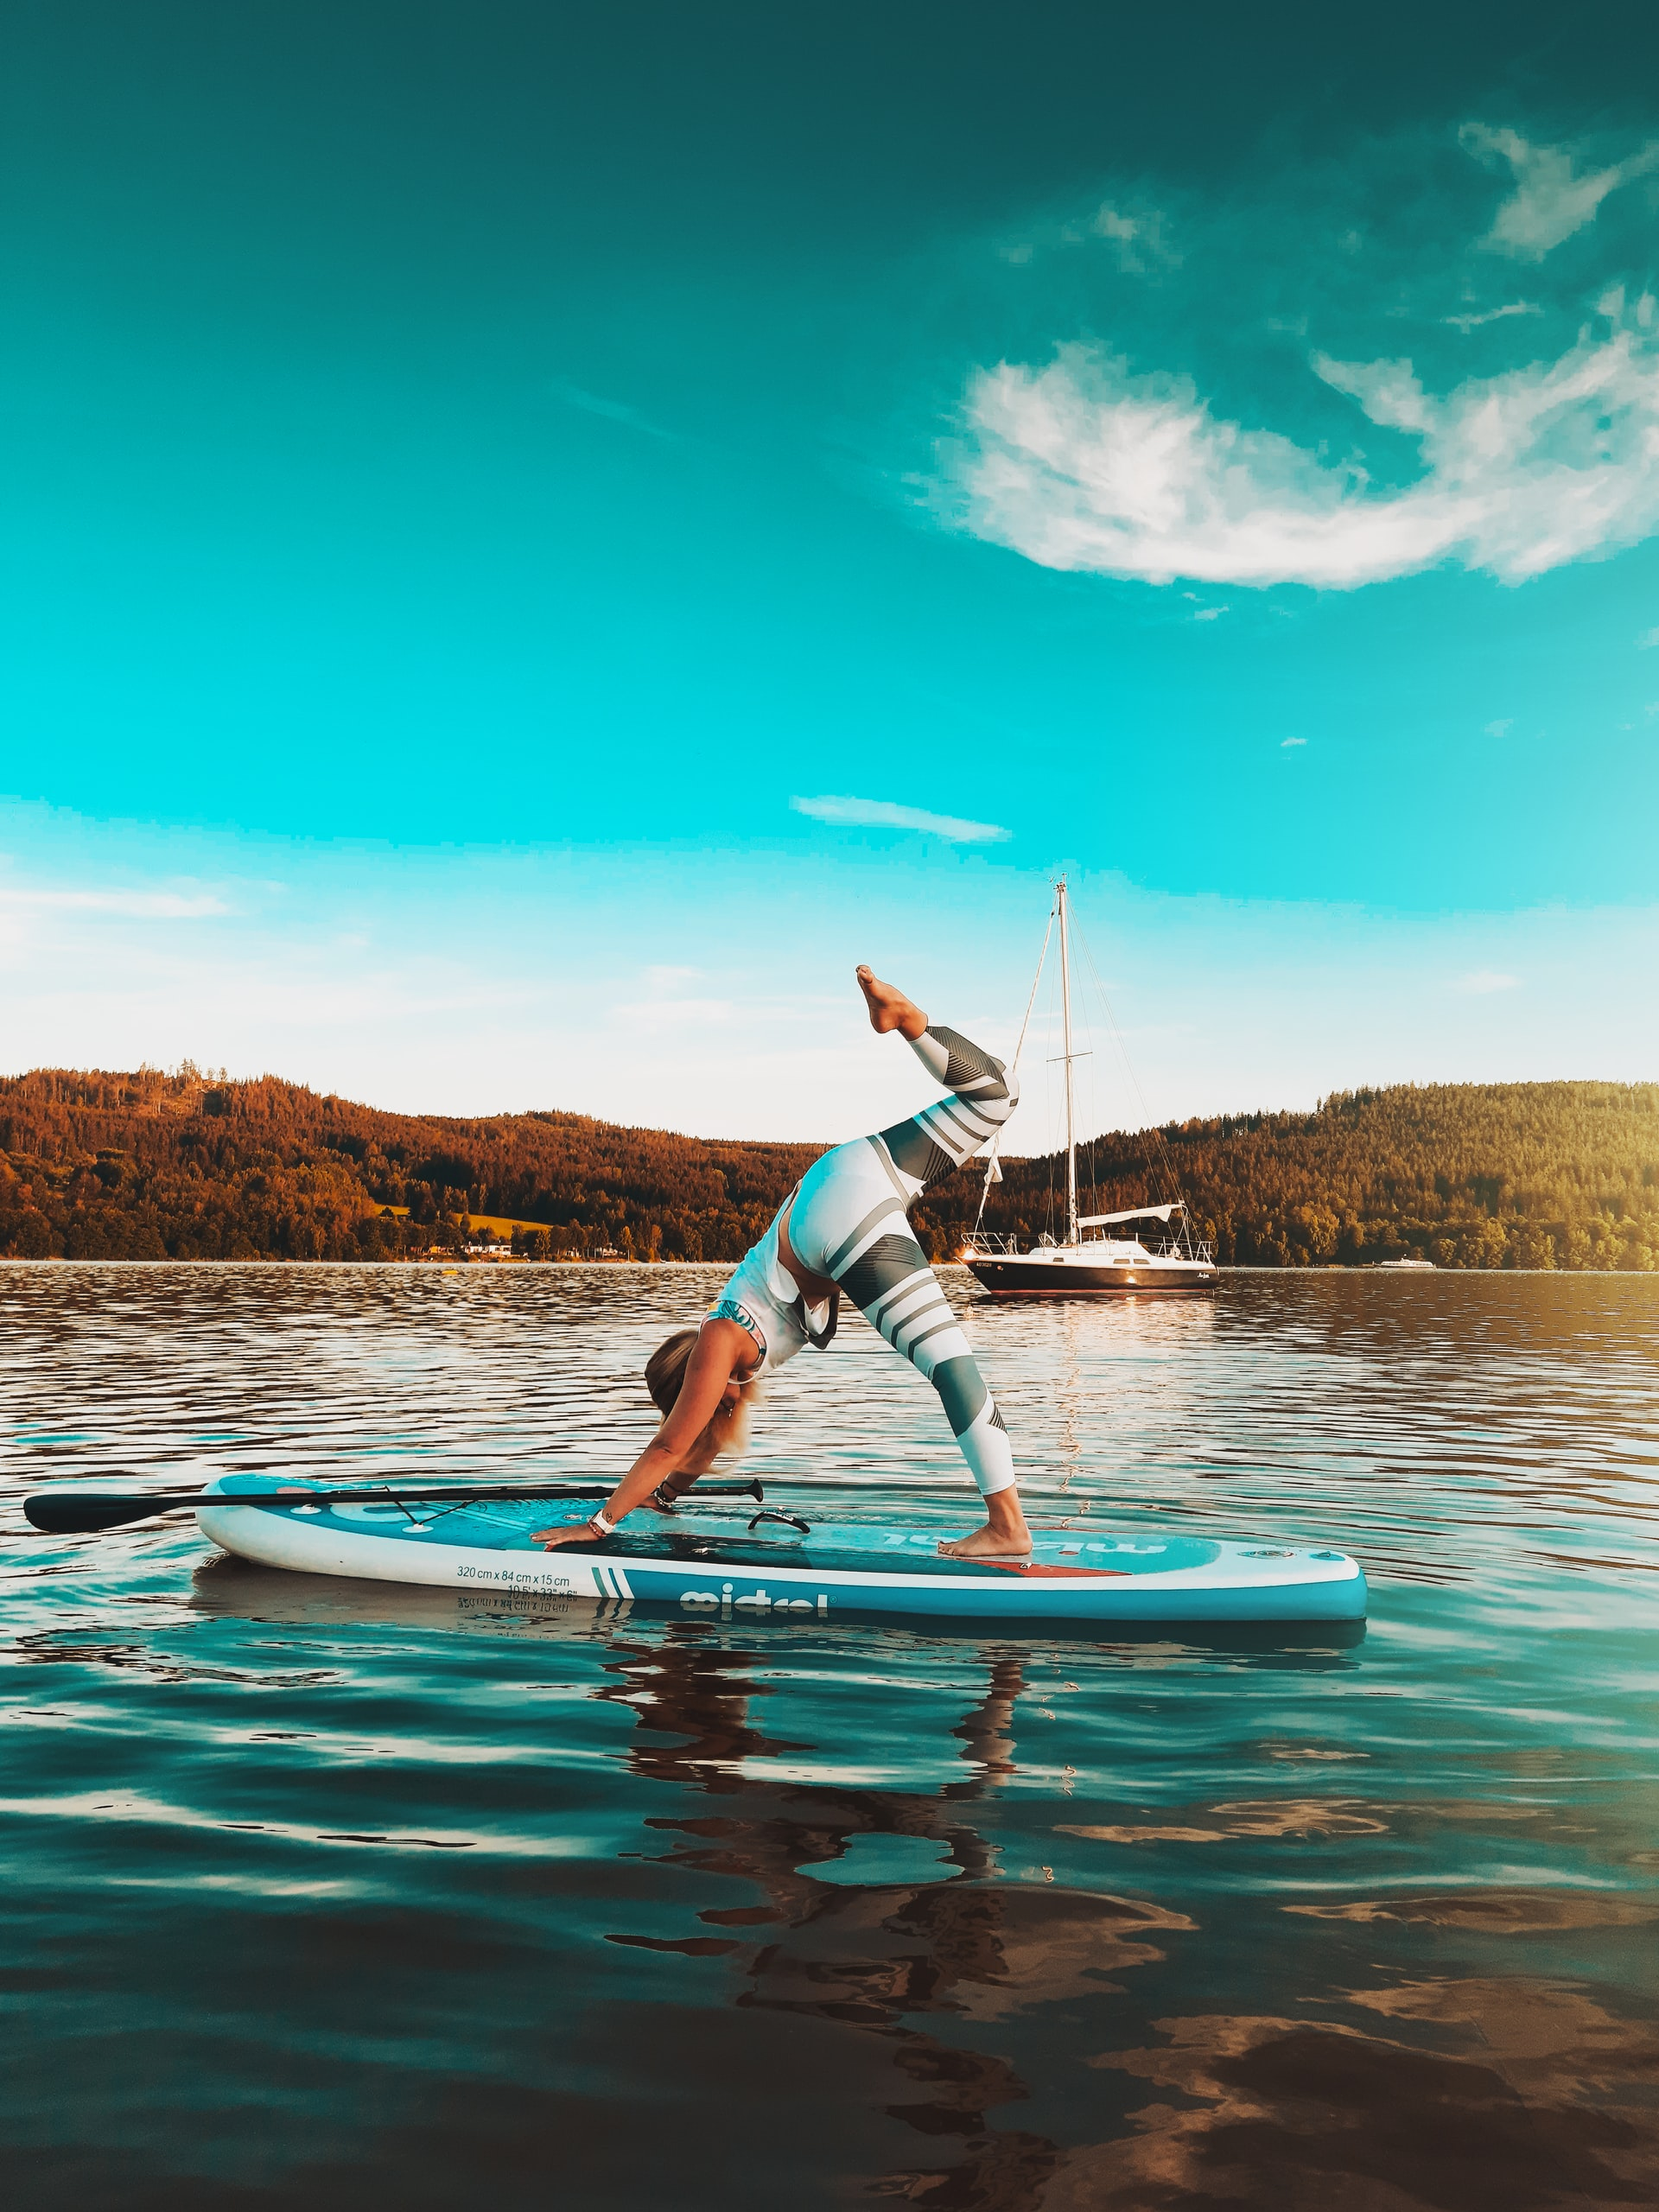 SUP Yoga: Connecting with Self on A Paddle Board